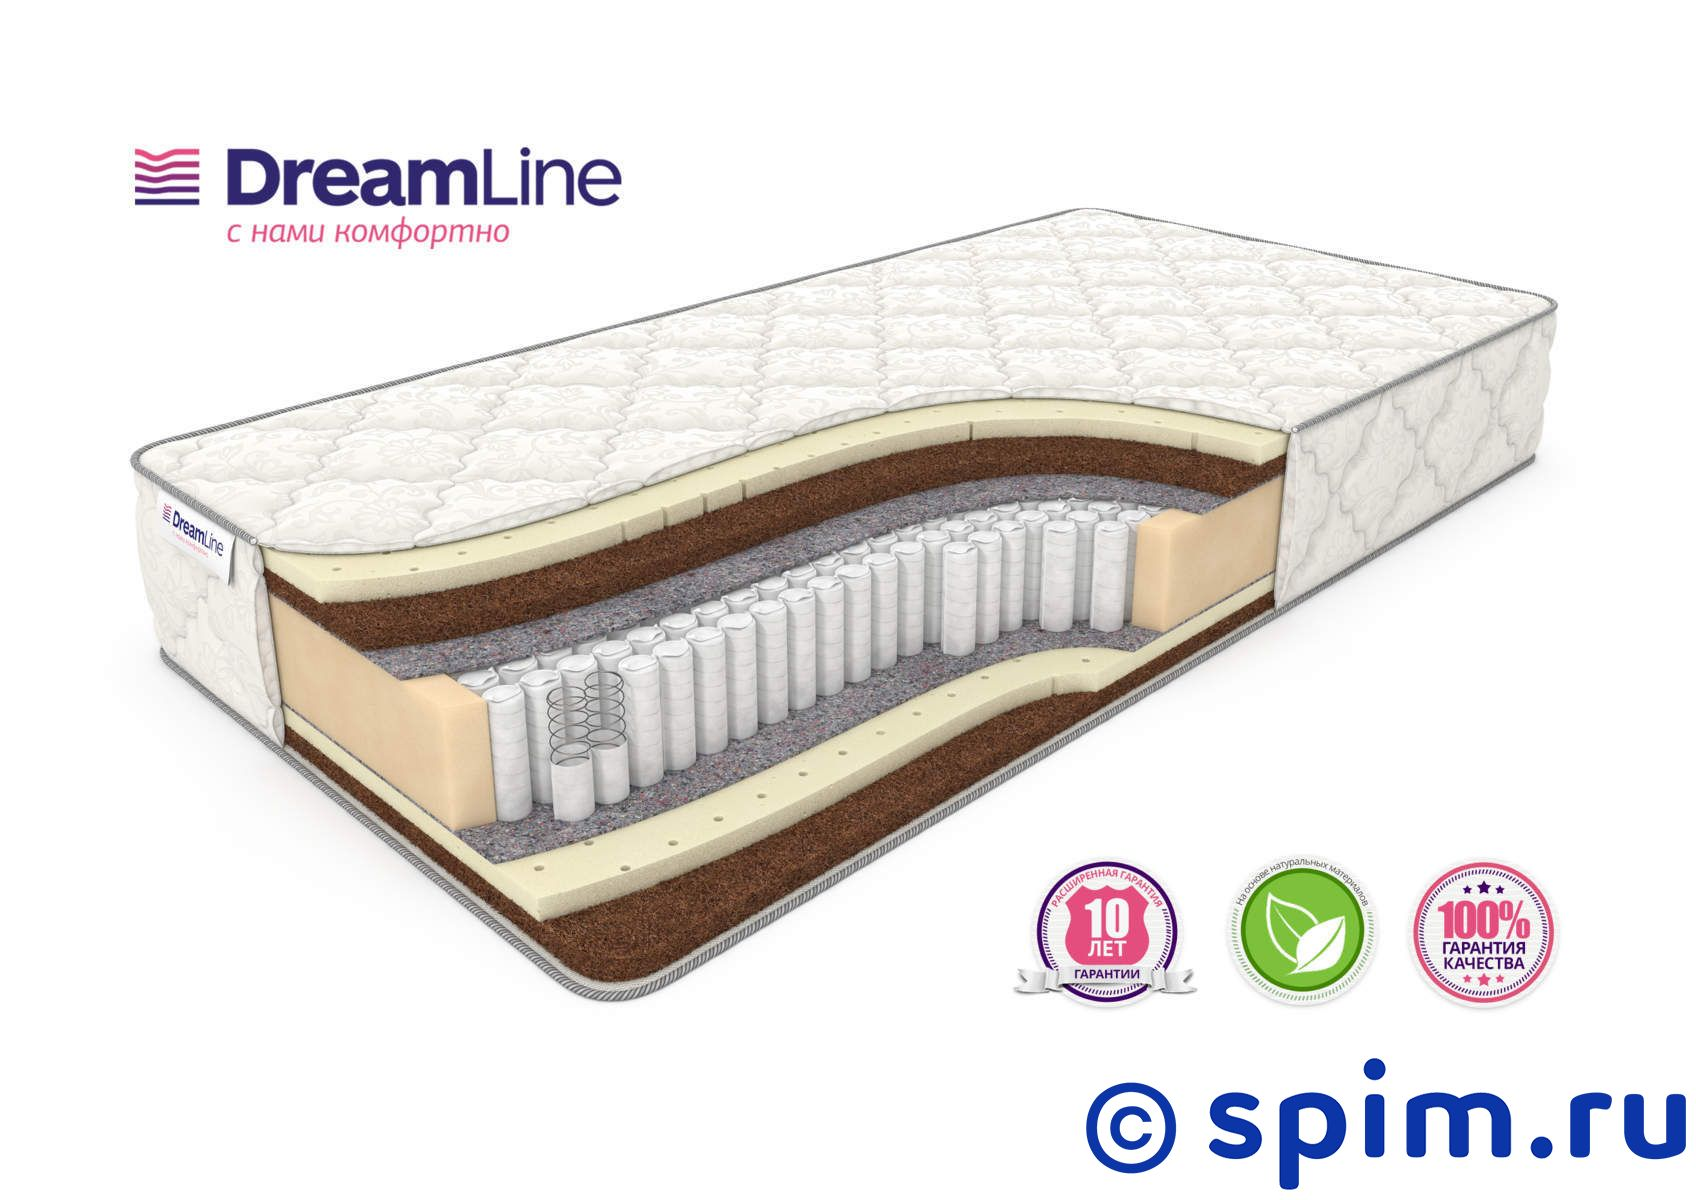 Матрас DreamLine Prime Mix S1000 140х190 см